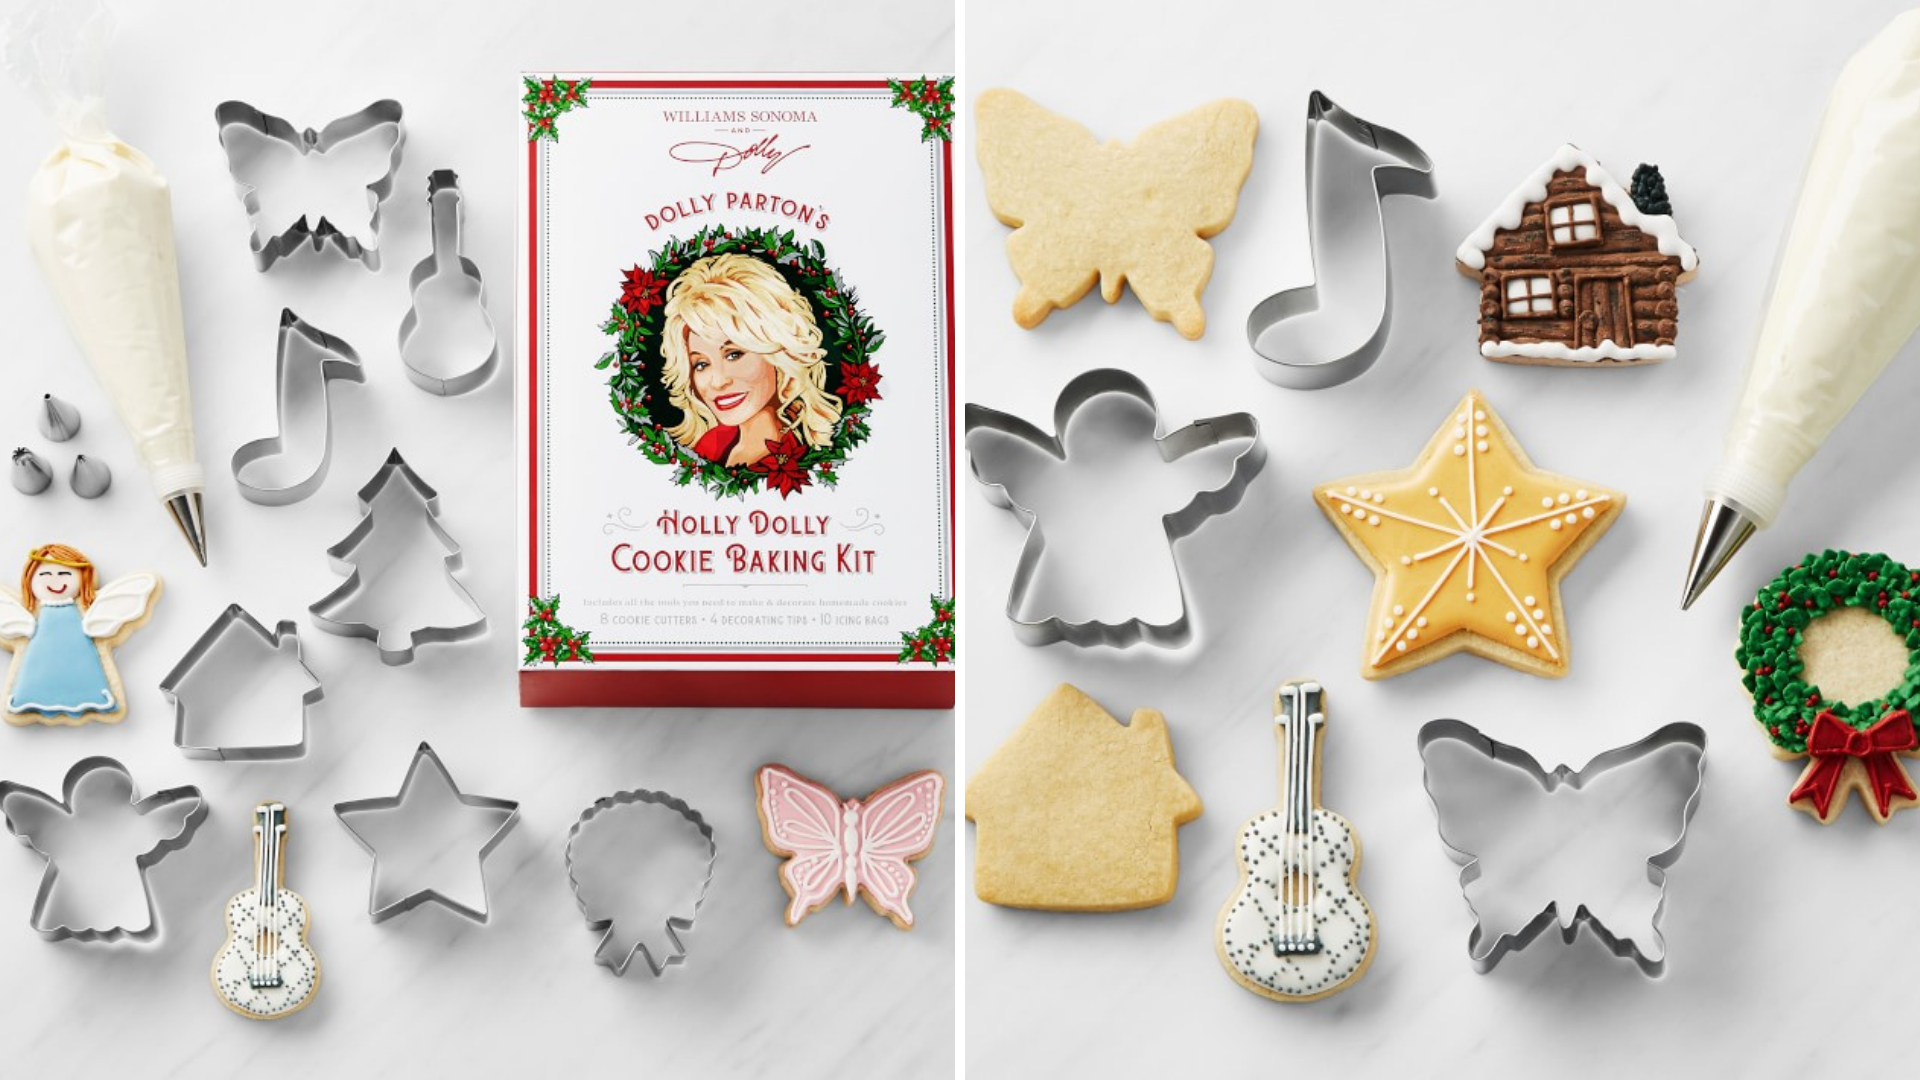 Cookie cutters surround a Dolly Parton baking kit.